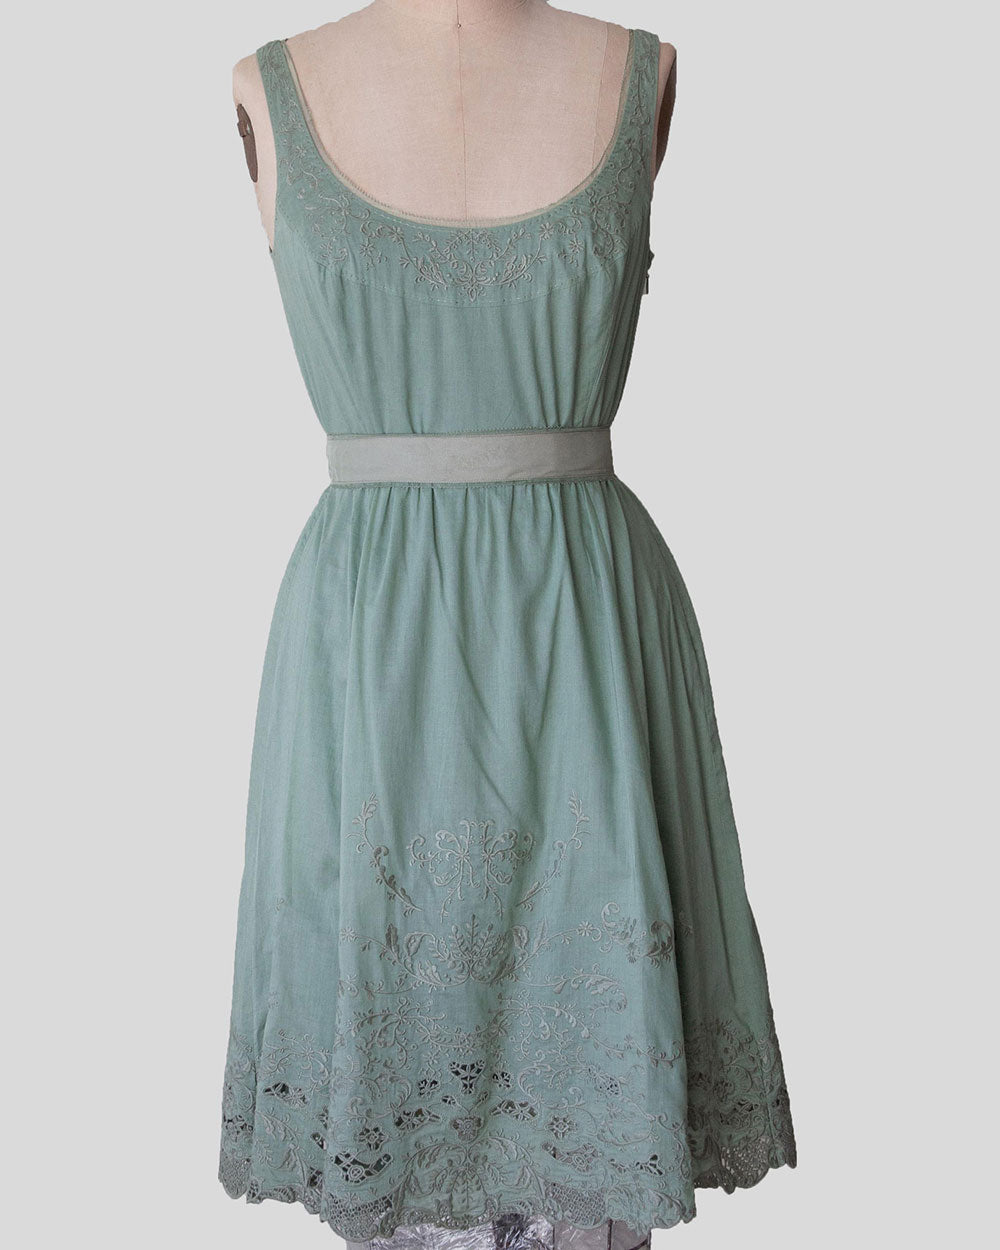 Elie Tahari Dress, Embroidered Dress. With lining and lace trim. A 100% Cotton